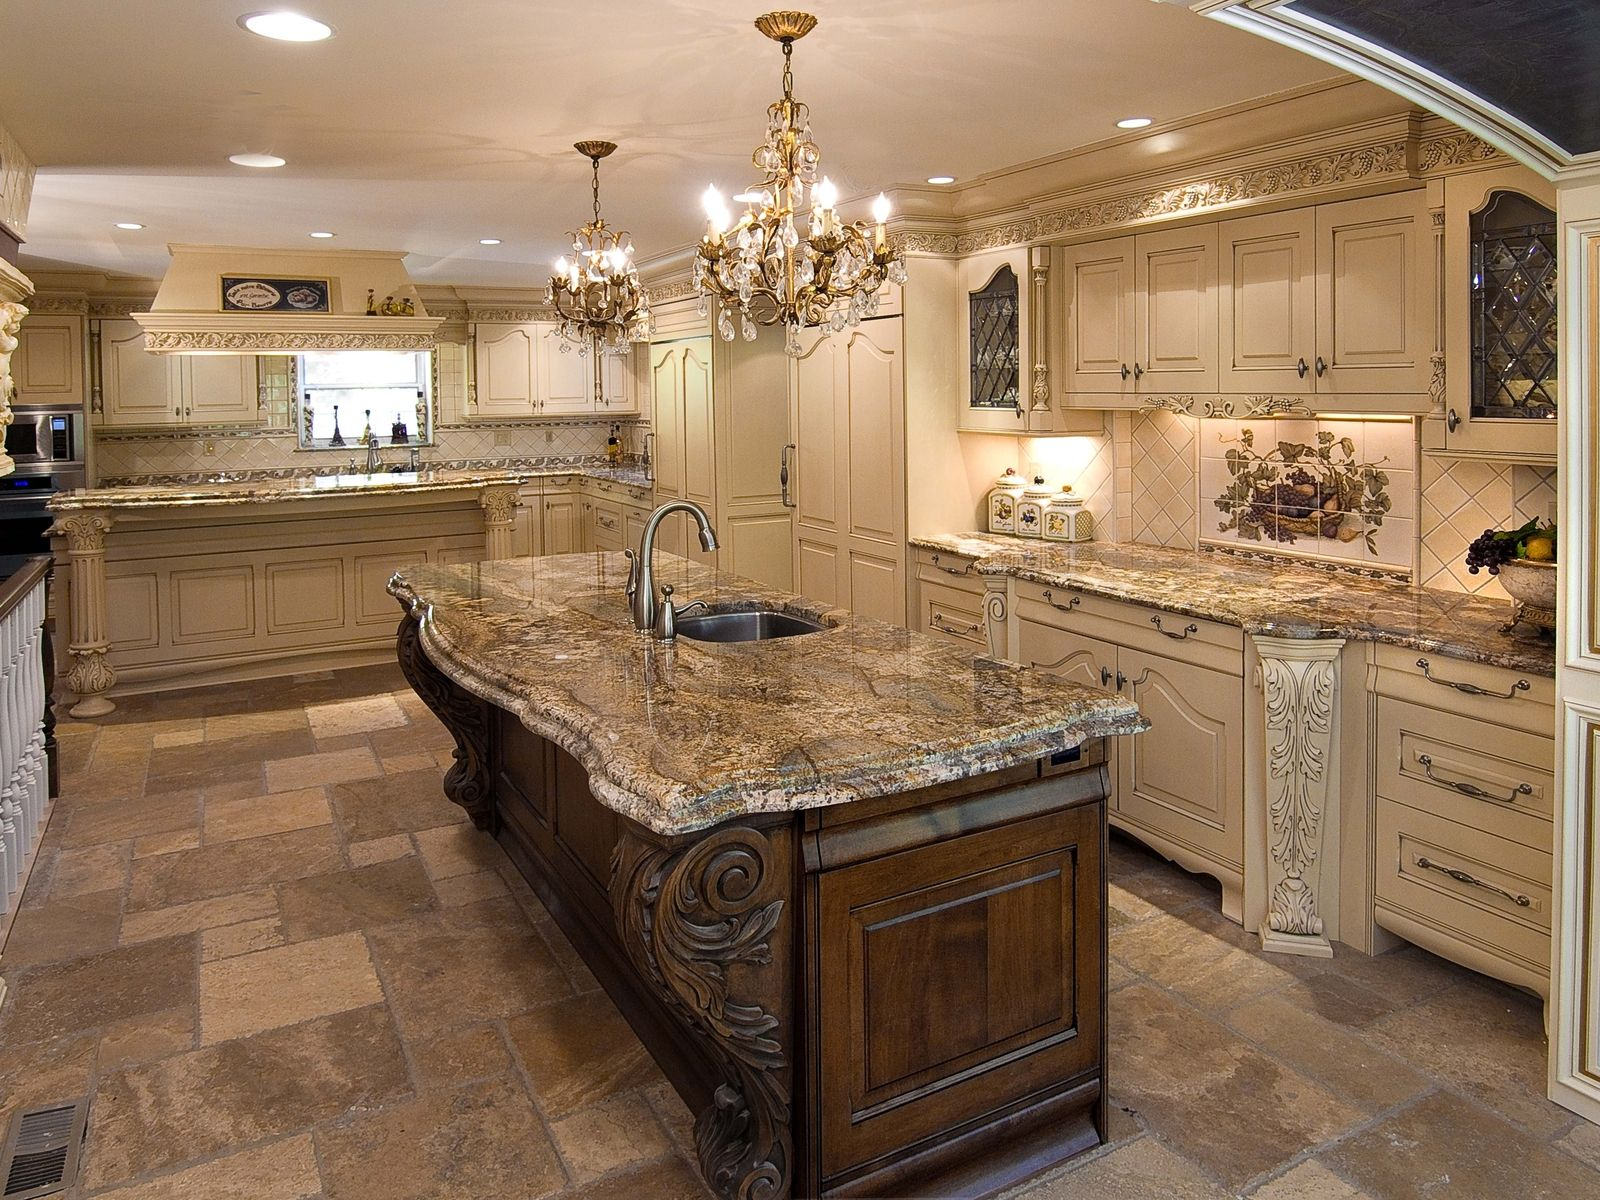 Ornate kitchen cabinets custom made ornate kitchen by Custom kitchens pictures